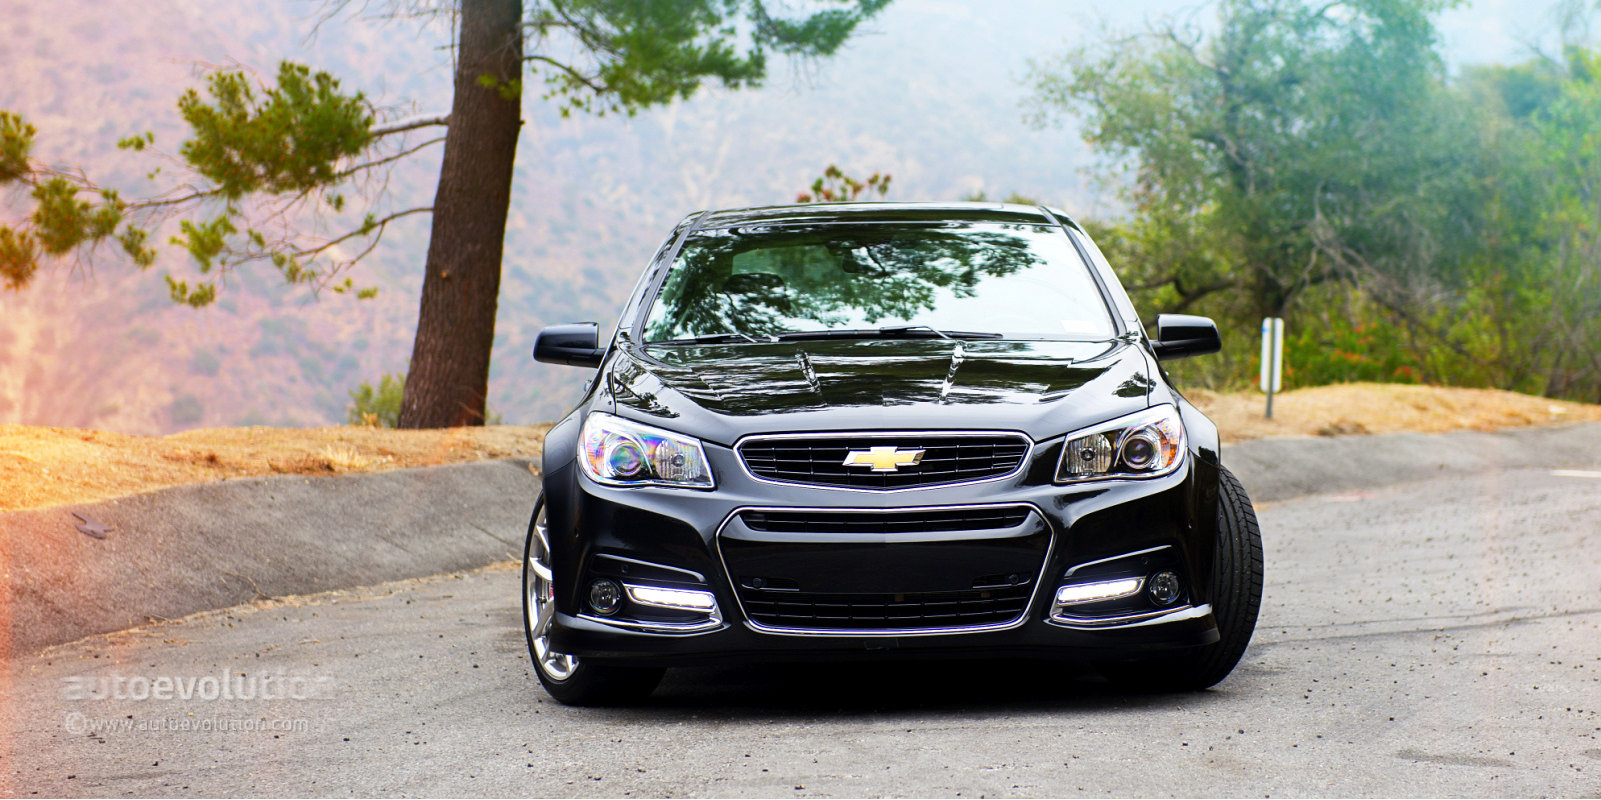 2015 Chevrolet Ss Gets 6 Speed Manual Magnetic Ride